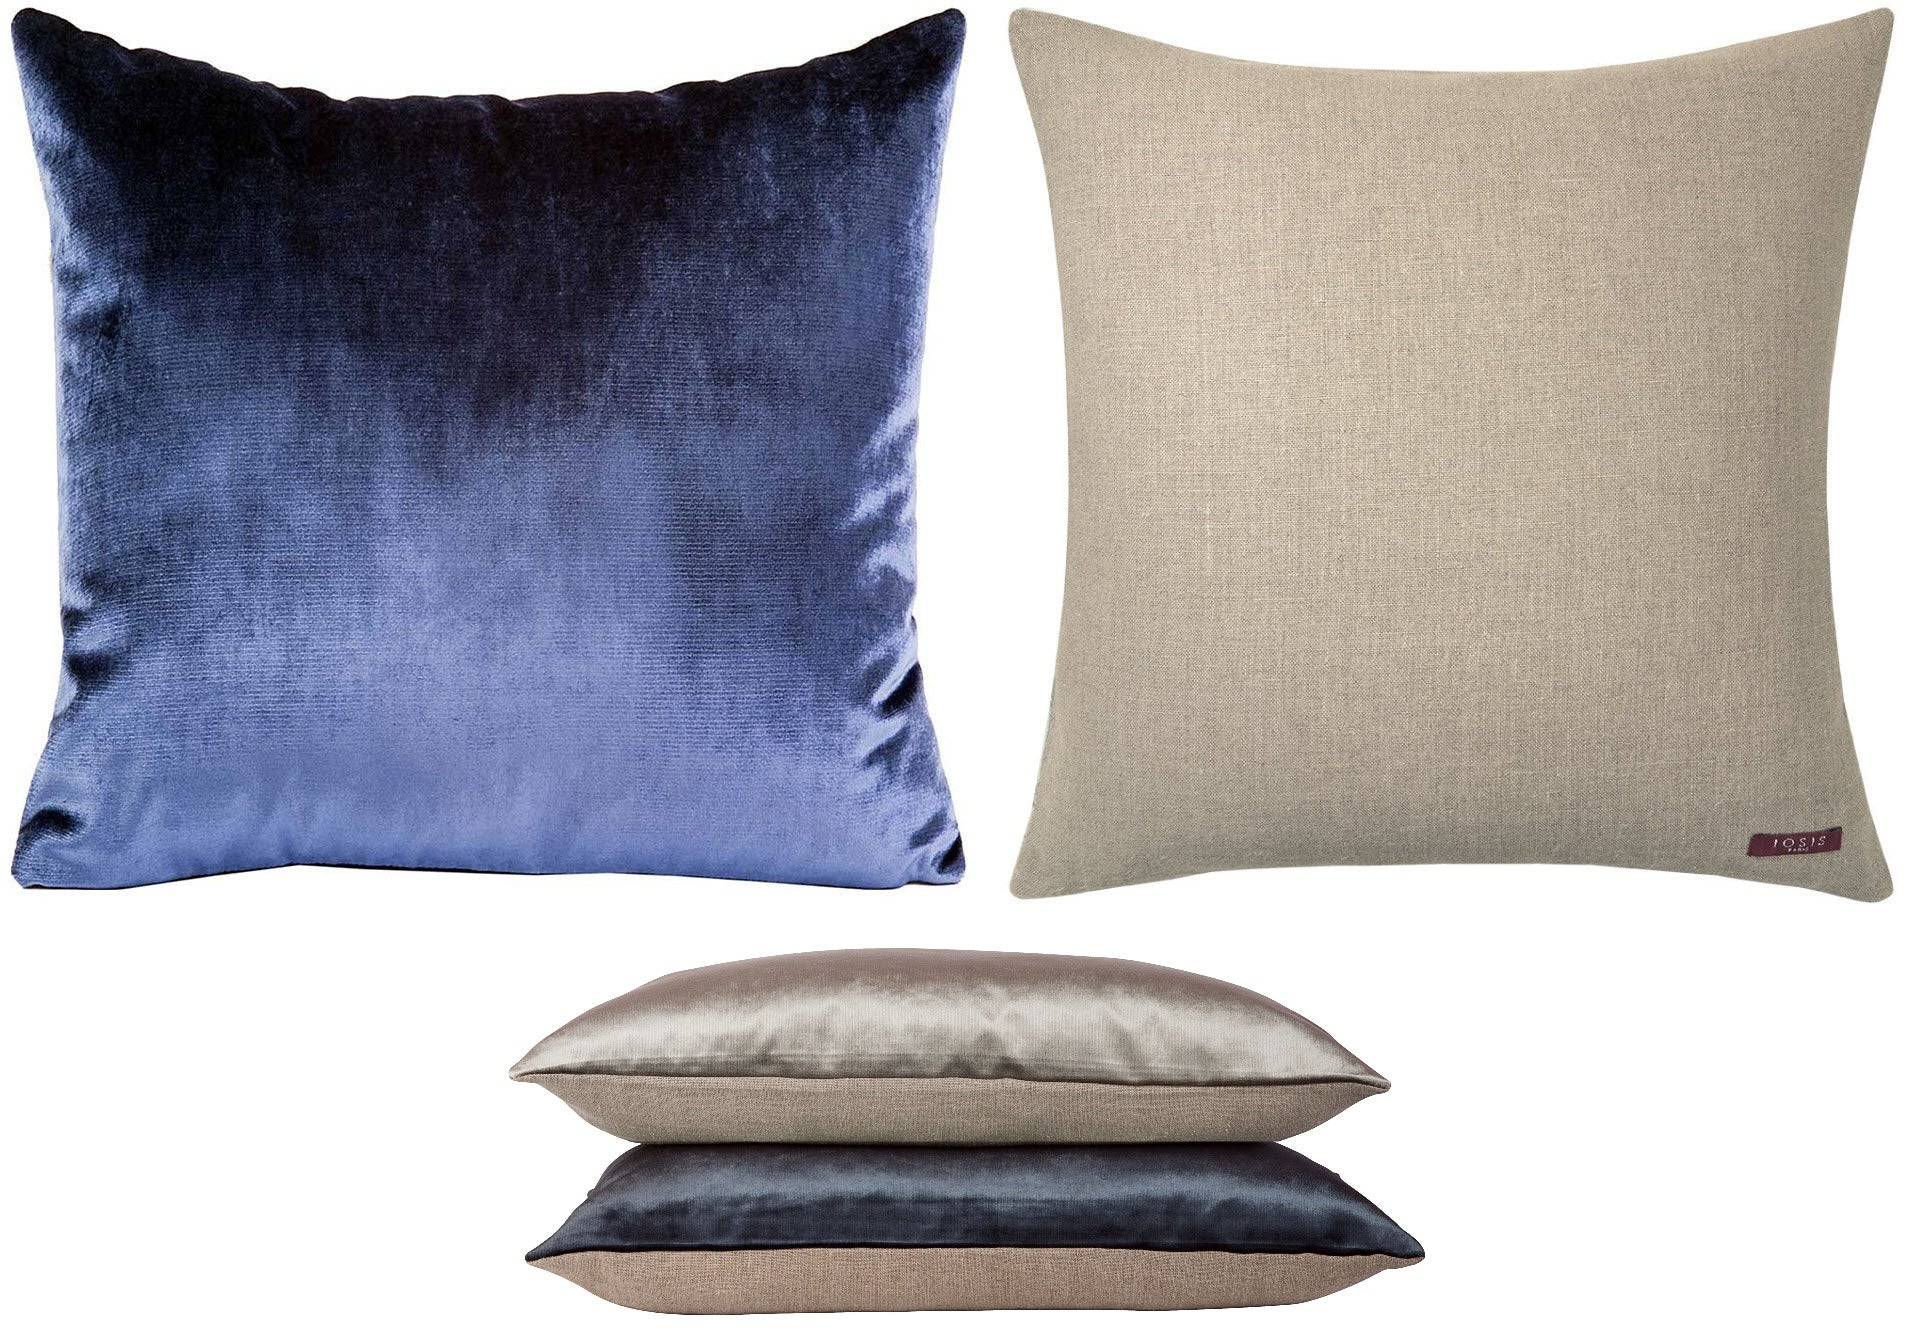 Yves Delorme Iosis Berlingot pillow has solid velvet velour front, a linen back, and clean, classic lines